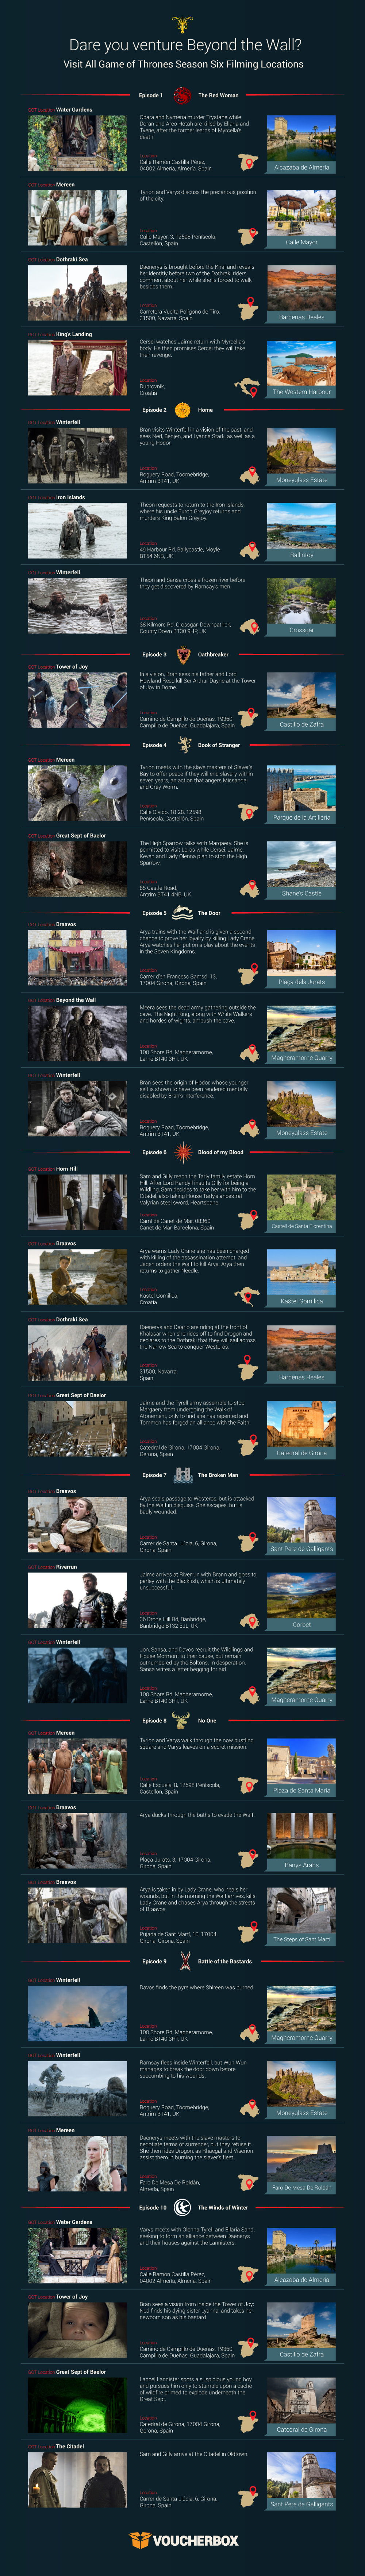 Game of Thrones Season 6 Filming Locations